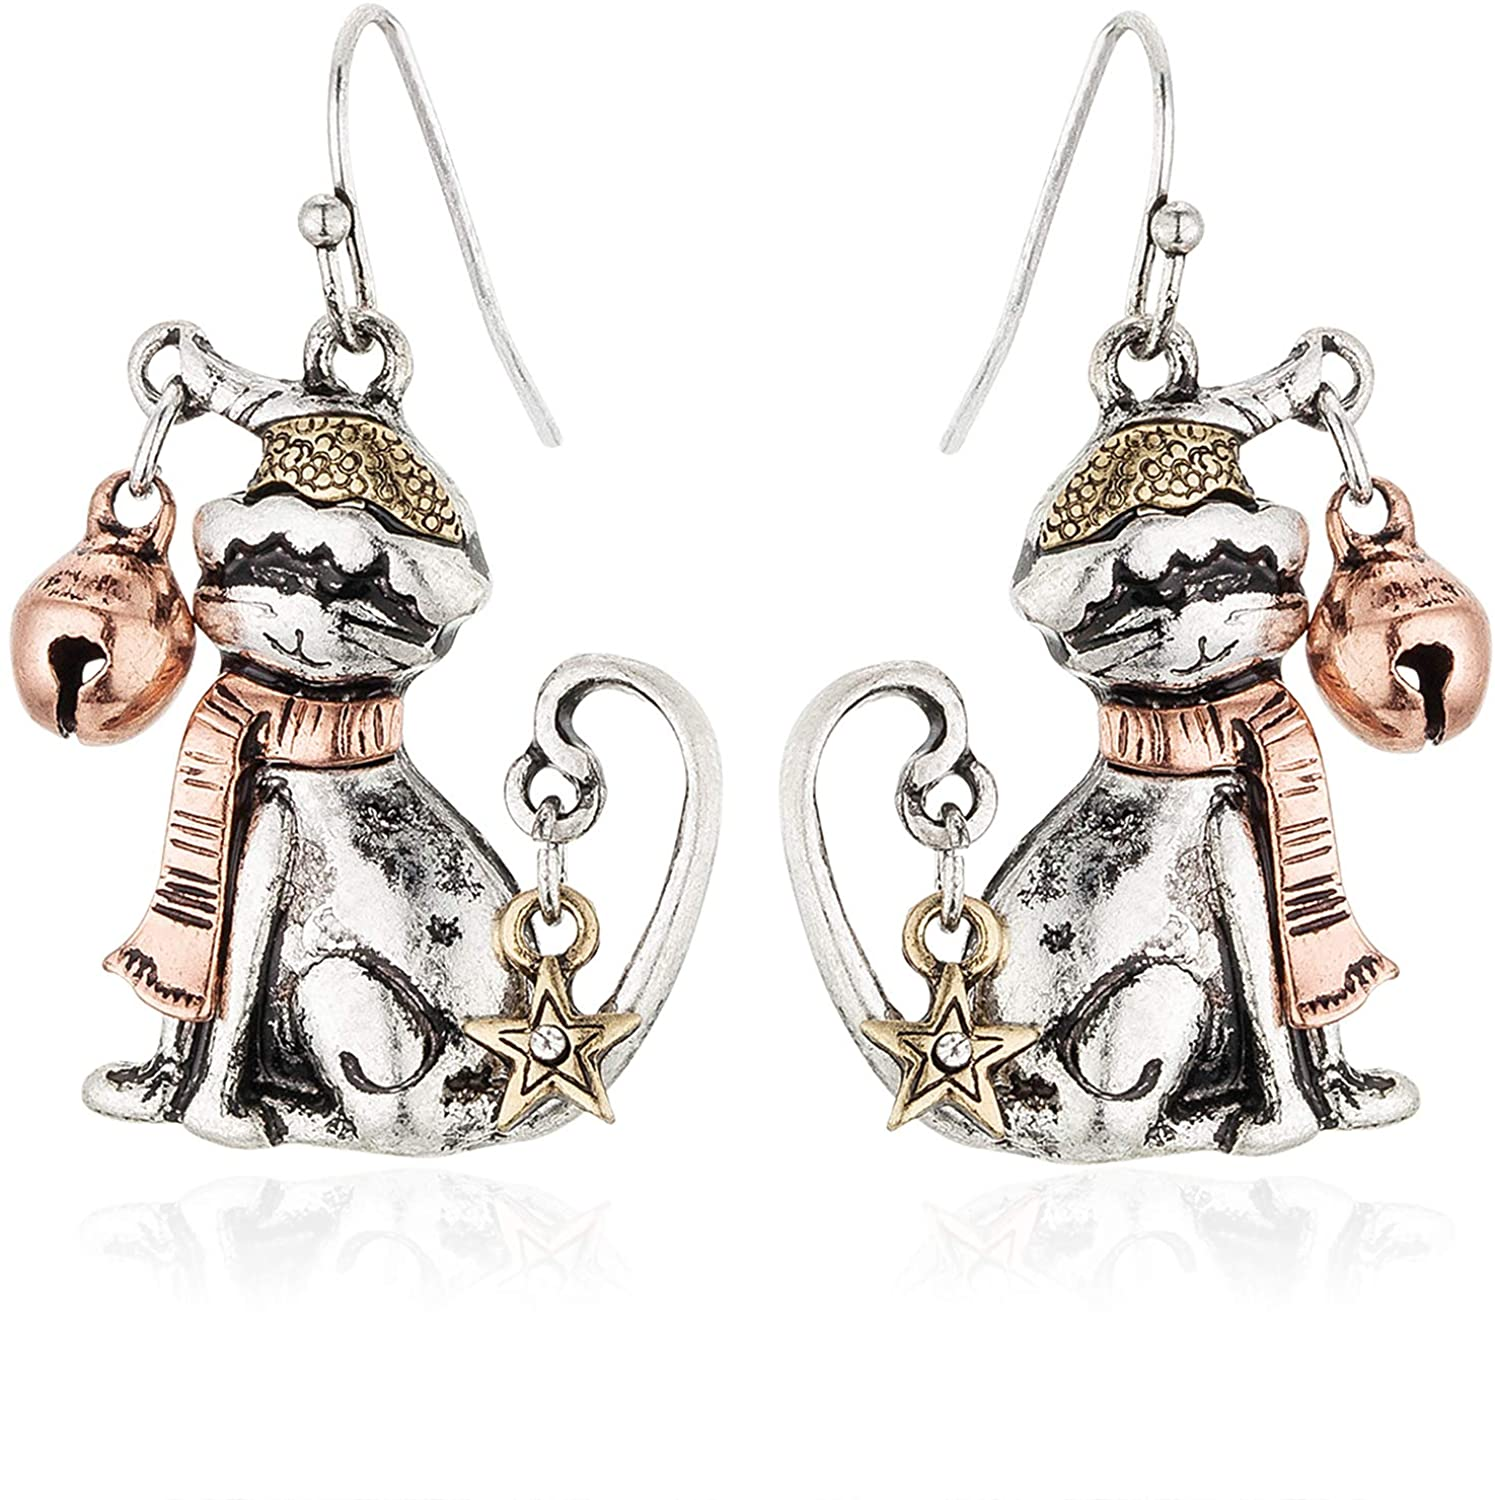 RareLove Christmas Cute Santa Cat with Ring Bell Piercing Dangle Earrings Two Tone Silver Rose Gold Plated Alloy Holiday Jewelry For Women Girls